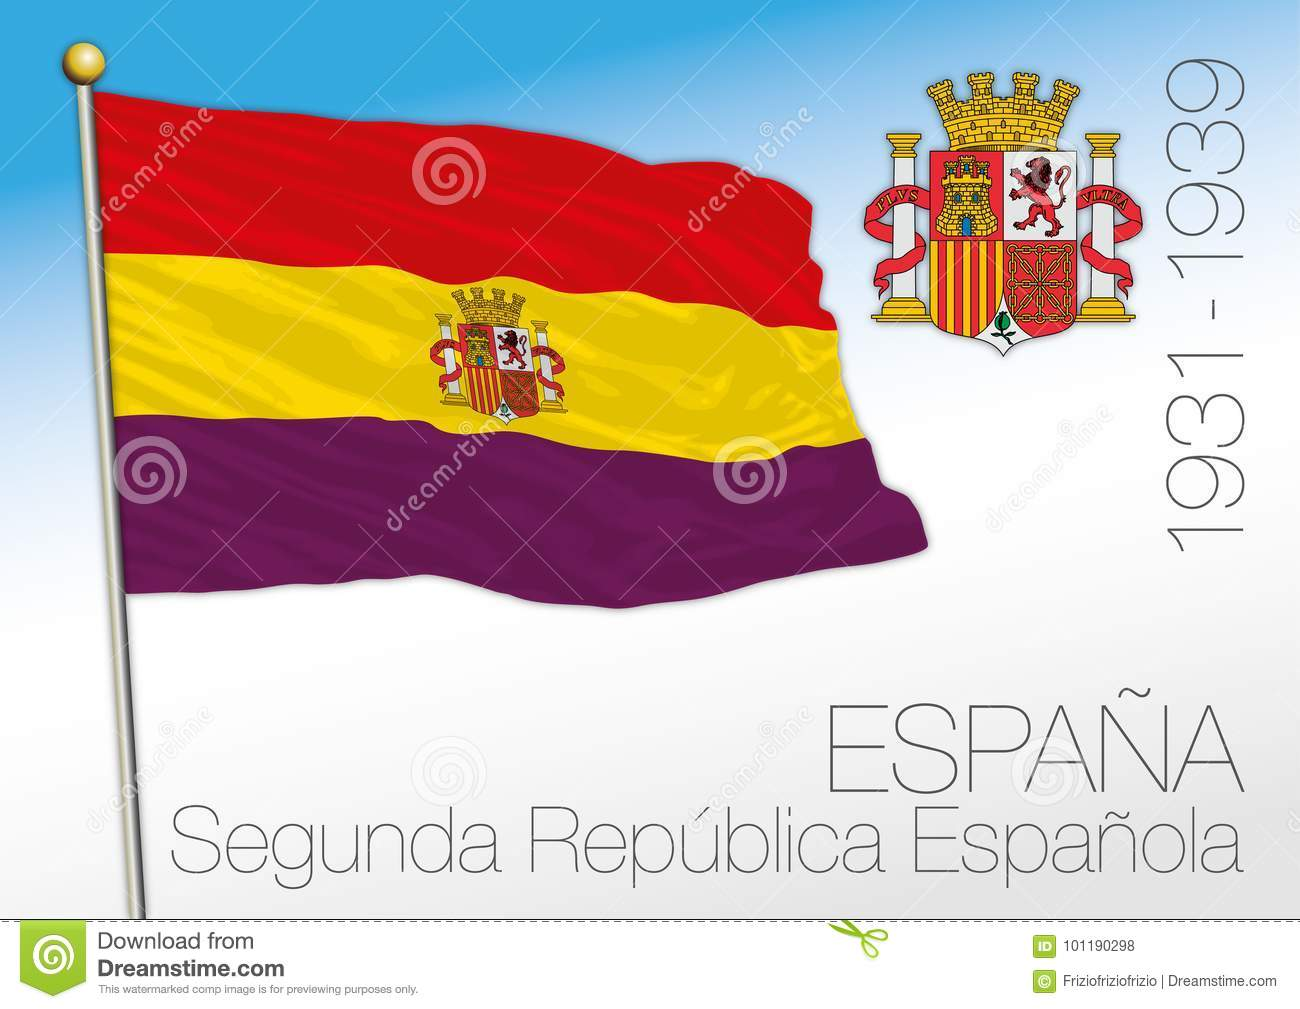 spanish republic historical flag and coat of arms spain 1931